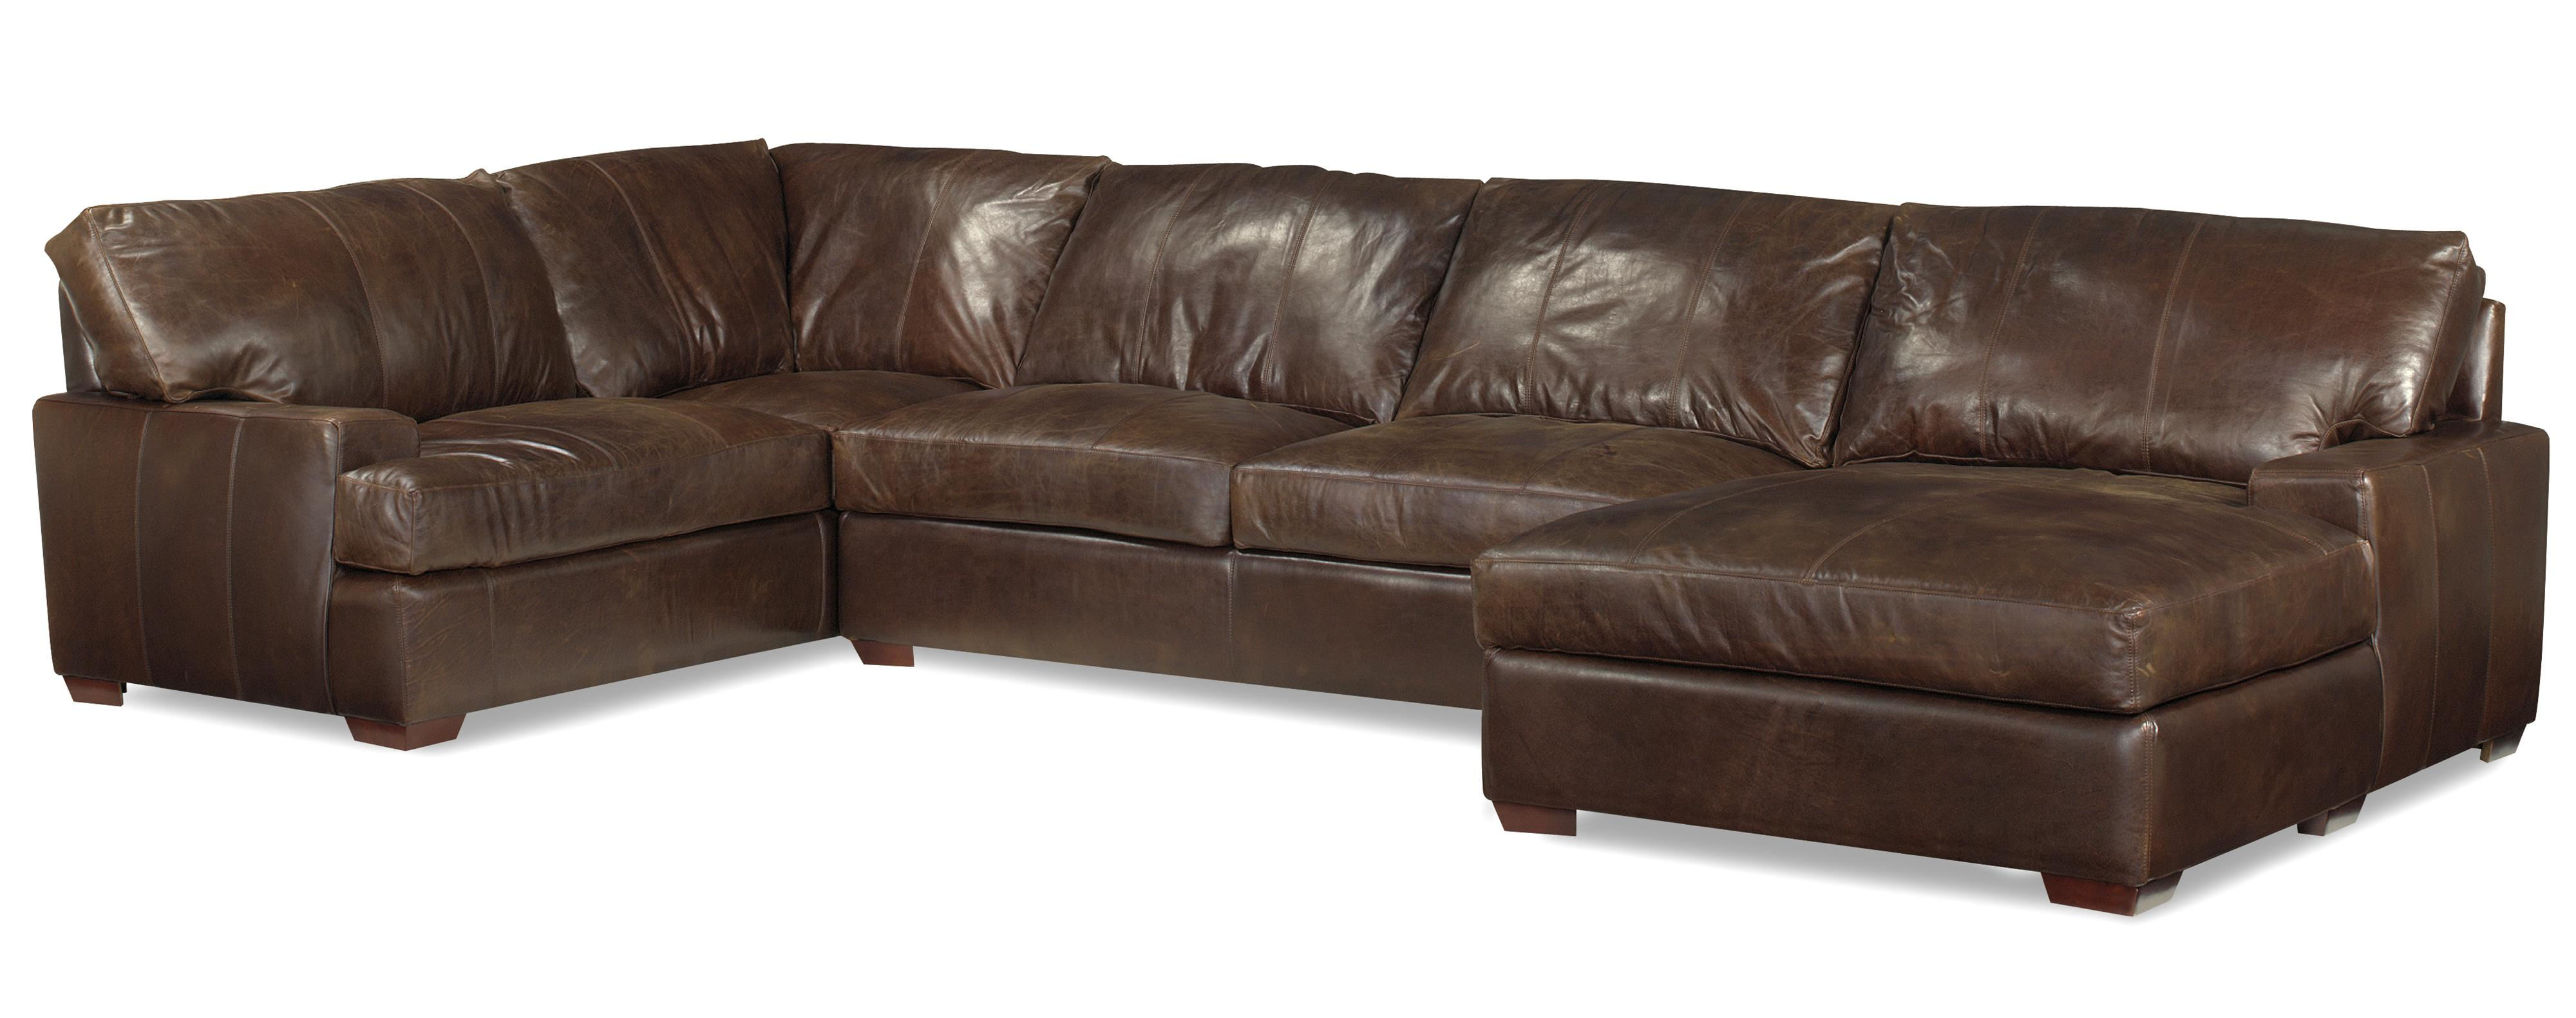 Usa premium leather 3635 track arm sofa chaise sectional w block feet olinde 39 s furniture Loveseat chaise sectional